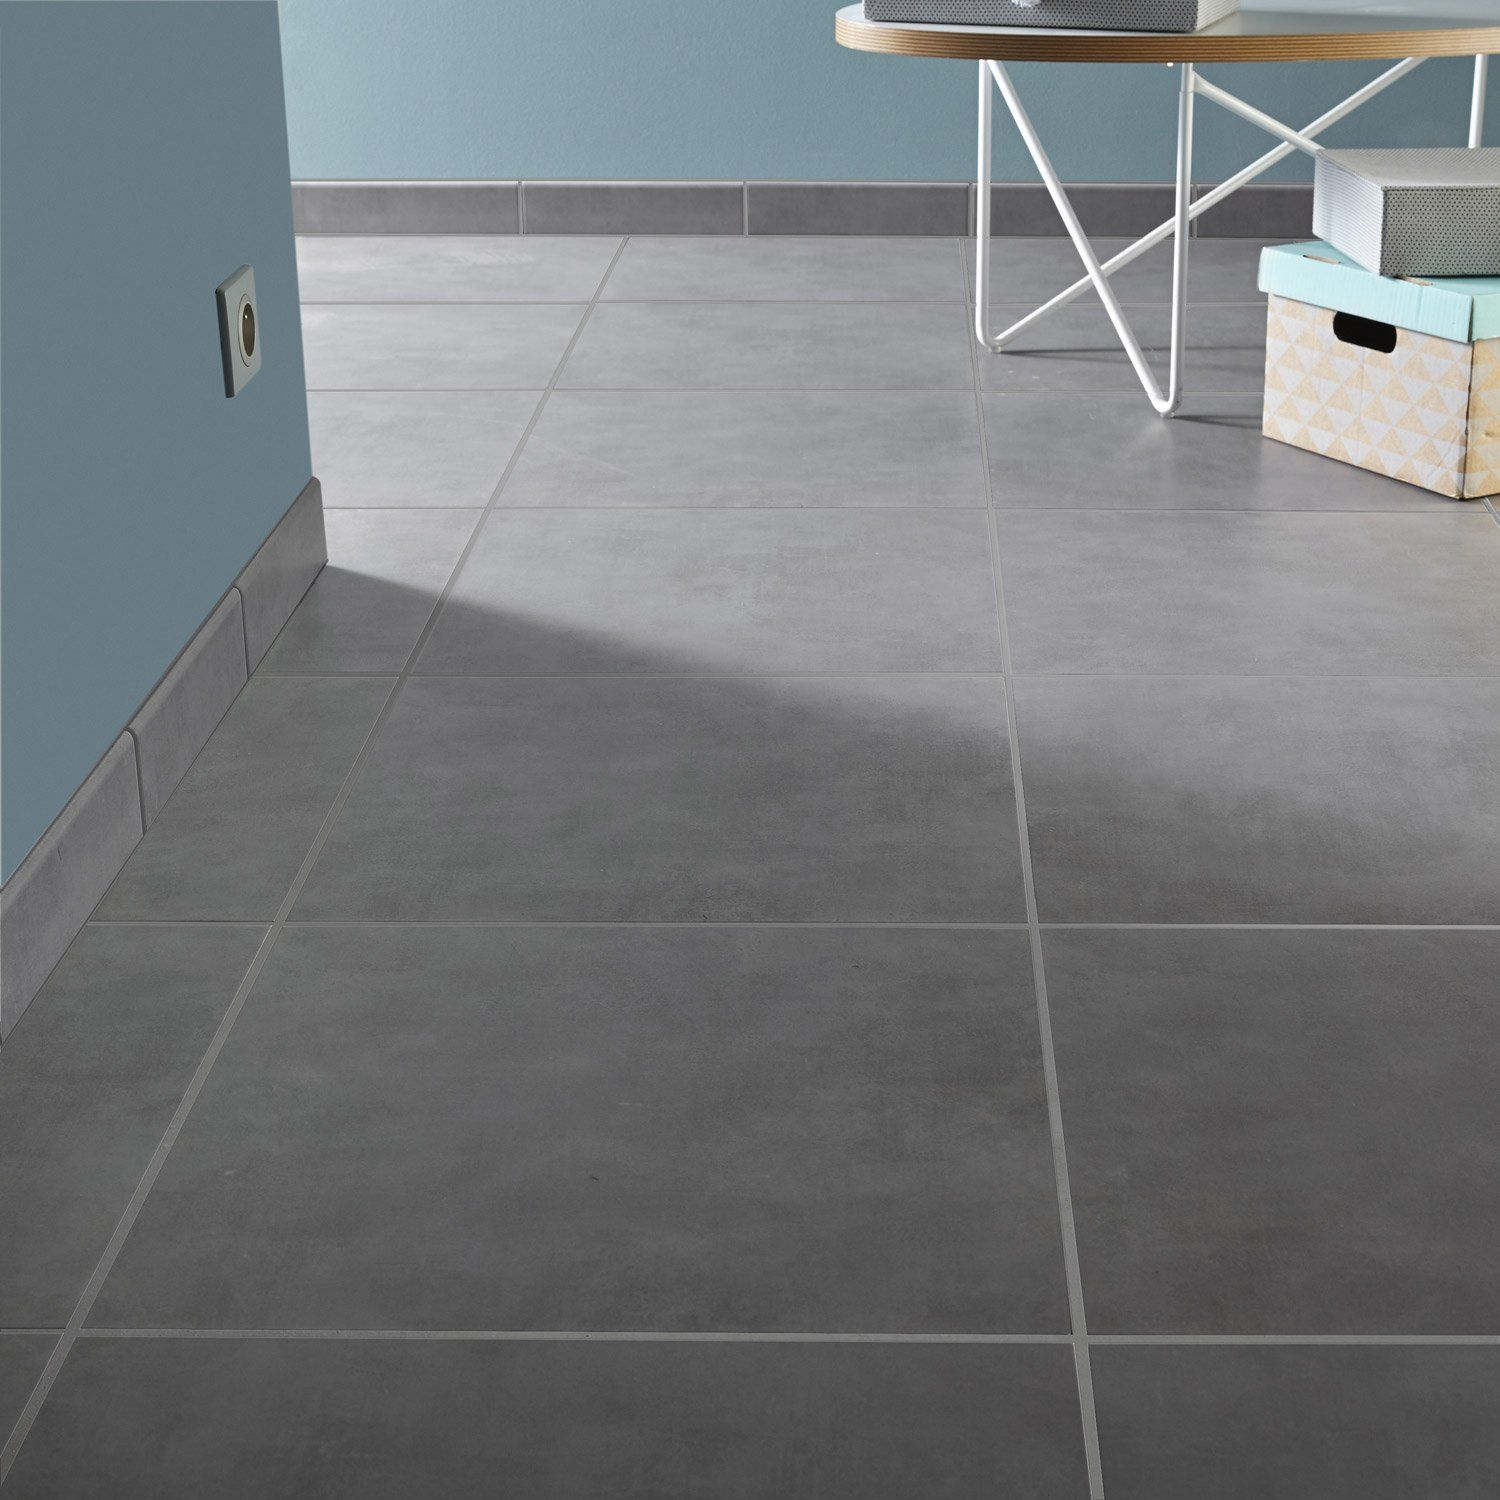 Carrelage int rieur kiosque aero en gr s gris poivr 45 for Carrelage 45x45